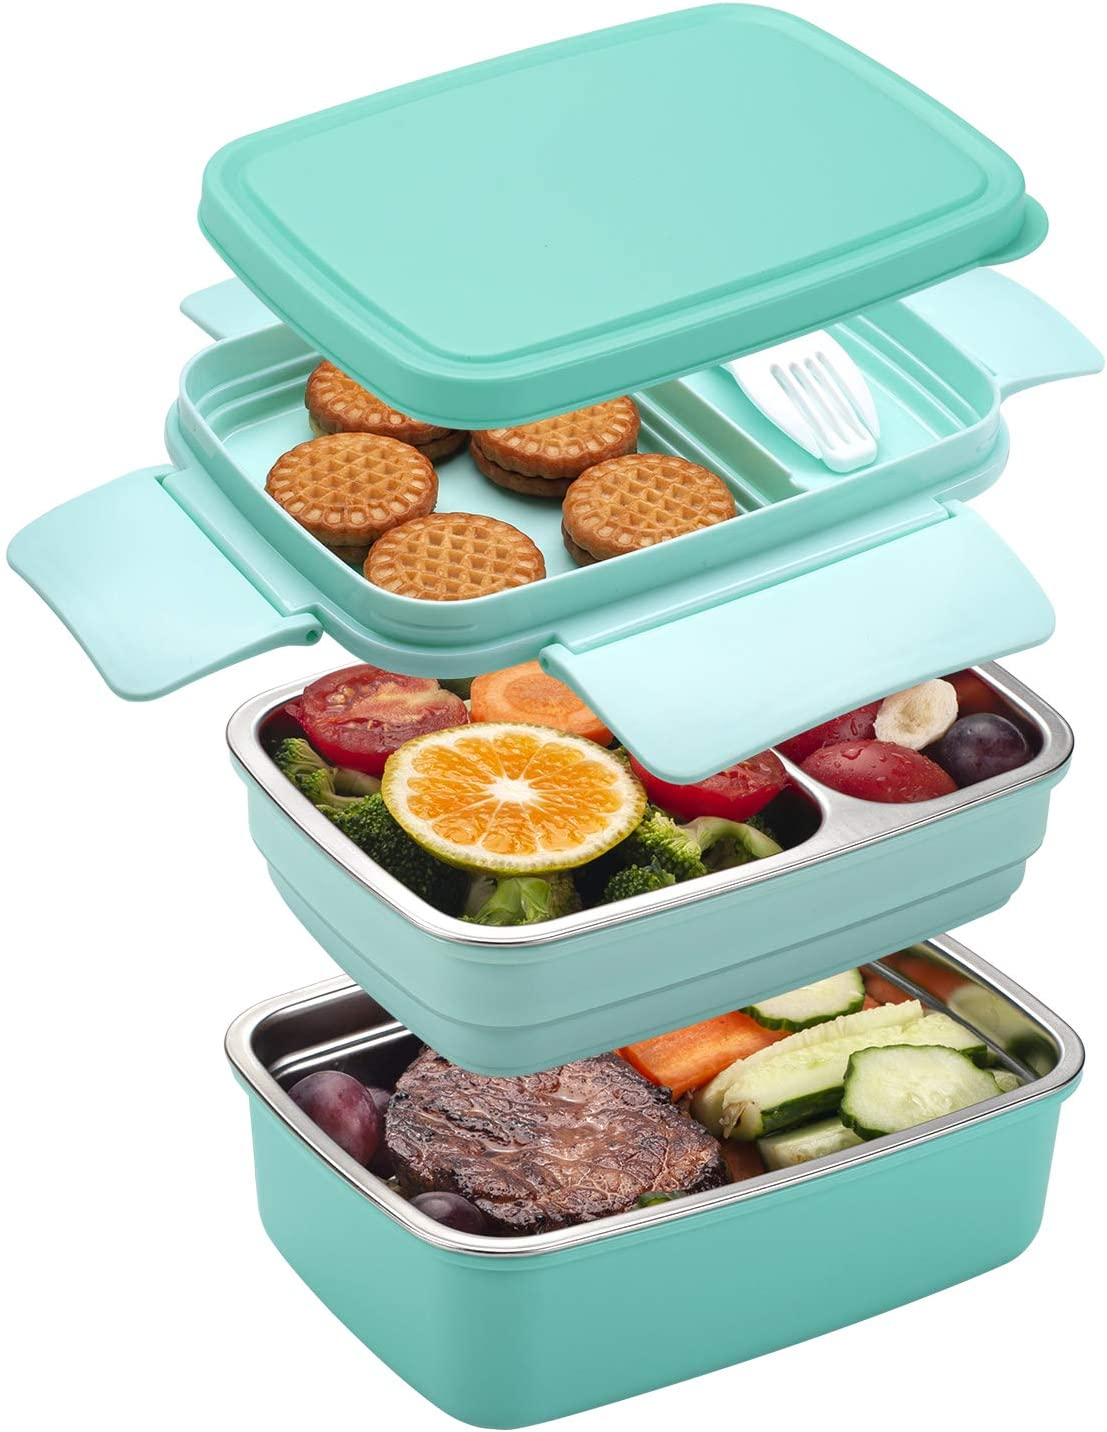 Freshmage Stainless Steel Bento Box for Adults & Kids, Leakproof Stackable Large Capacity Dishwasher Safe Lunch Container with Divided Compartments, Green